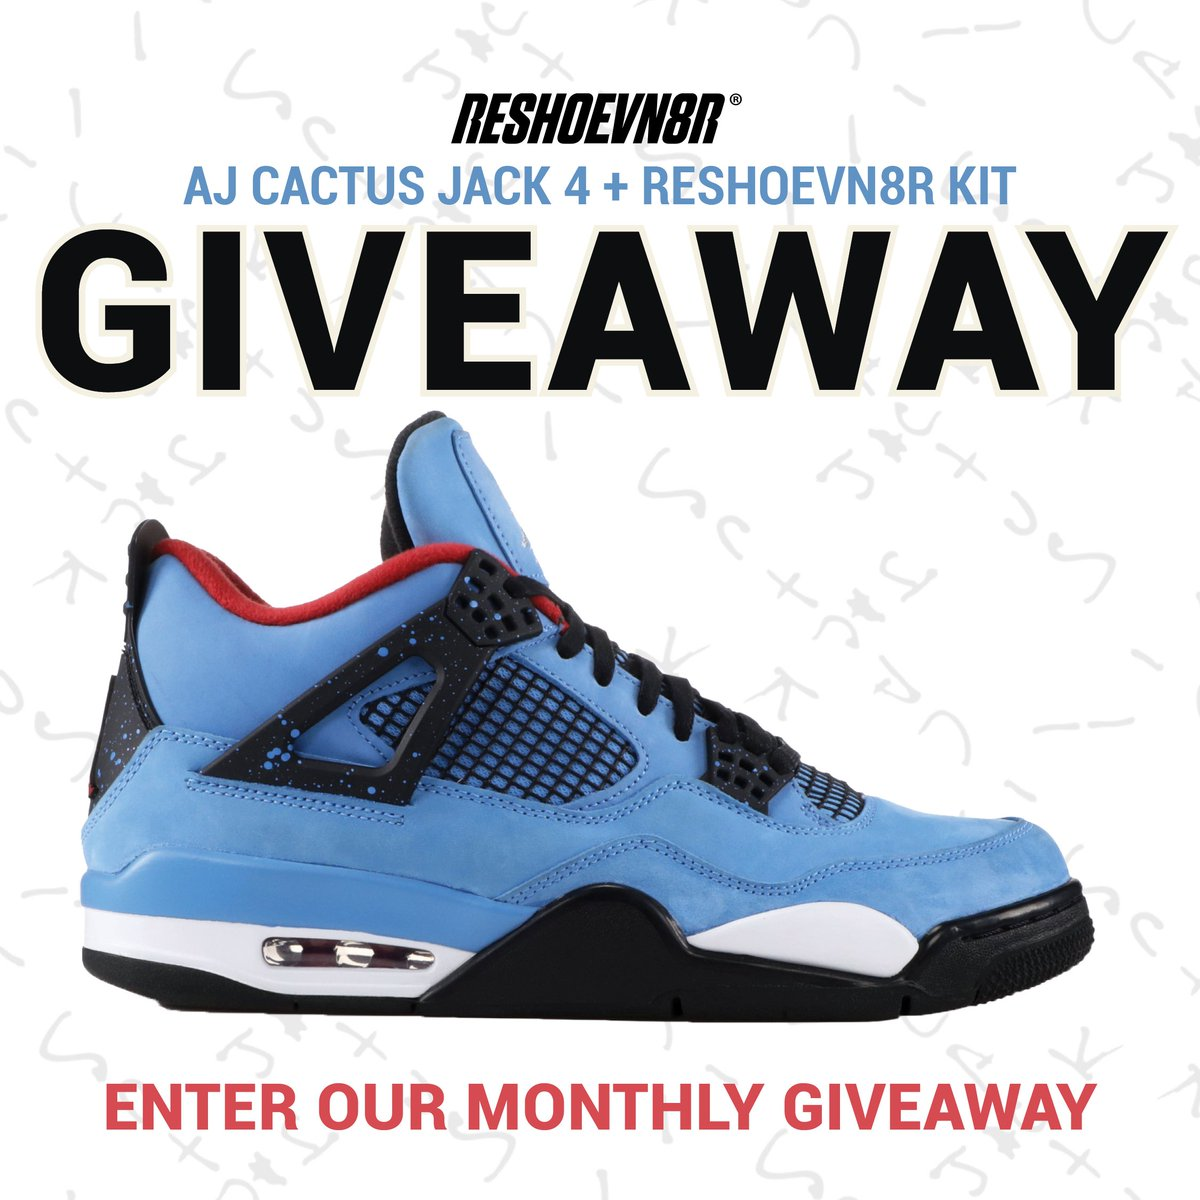 April is here! You know what that means. New giveaway! This month we're giving a pair of Cactus Jack 4s plus a Reshoevn8r cleaning kit! For an extra entry retweet this post! Check out all the ways to enter below.  Enter here: https://reshoevn8r.com/pages/giveaway